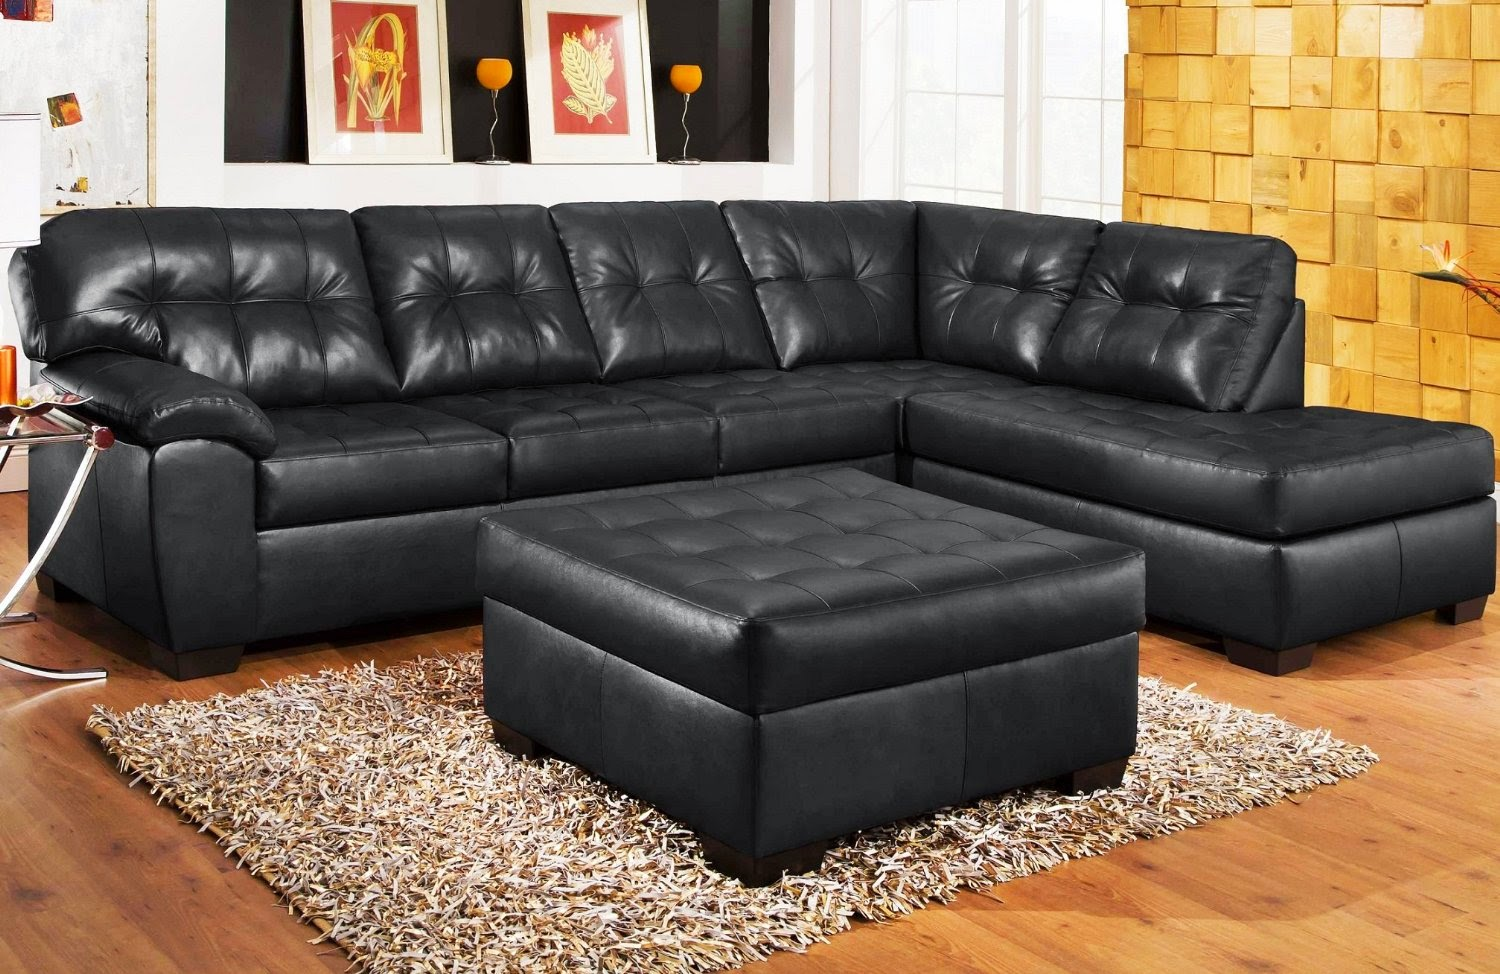 Black Couch Black Sectional Couch